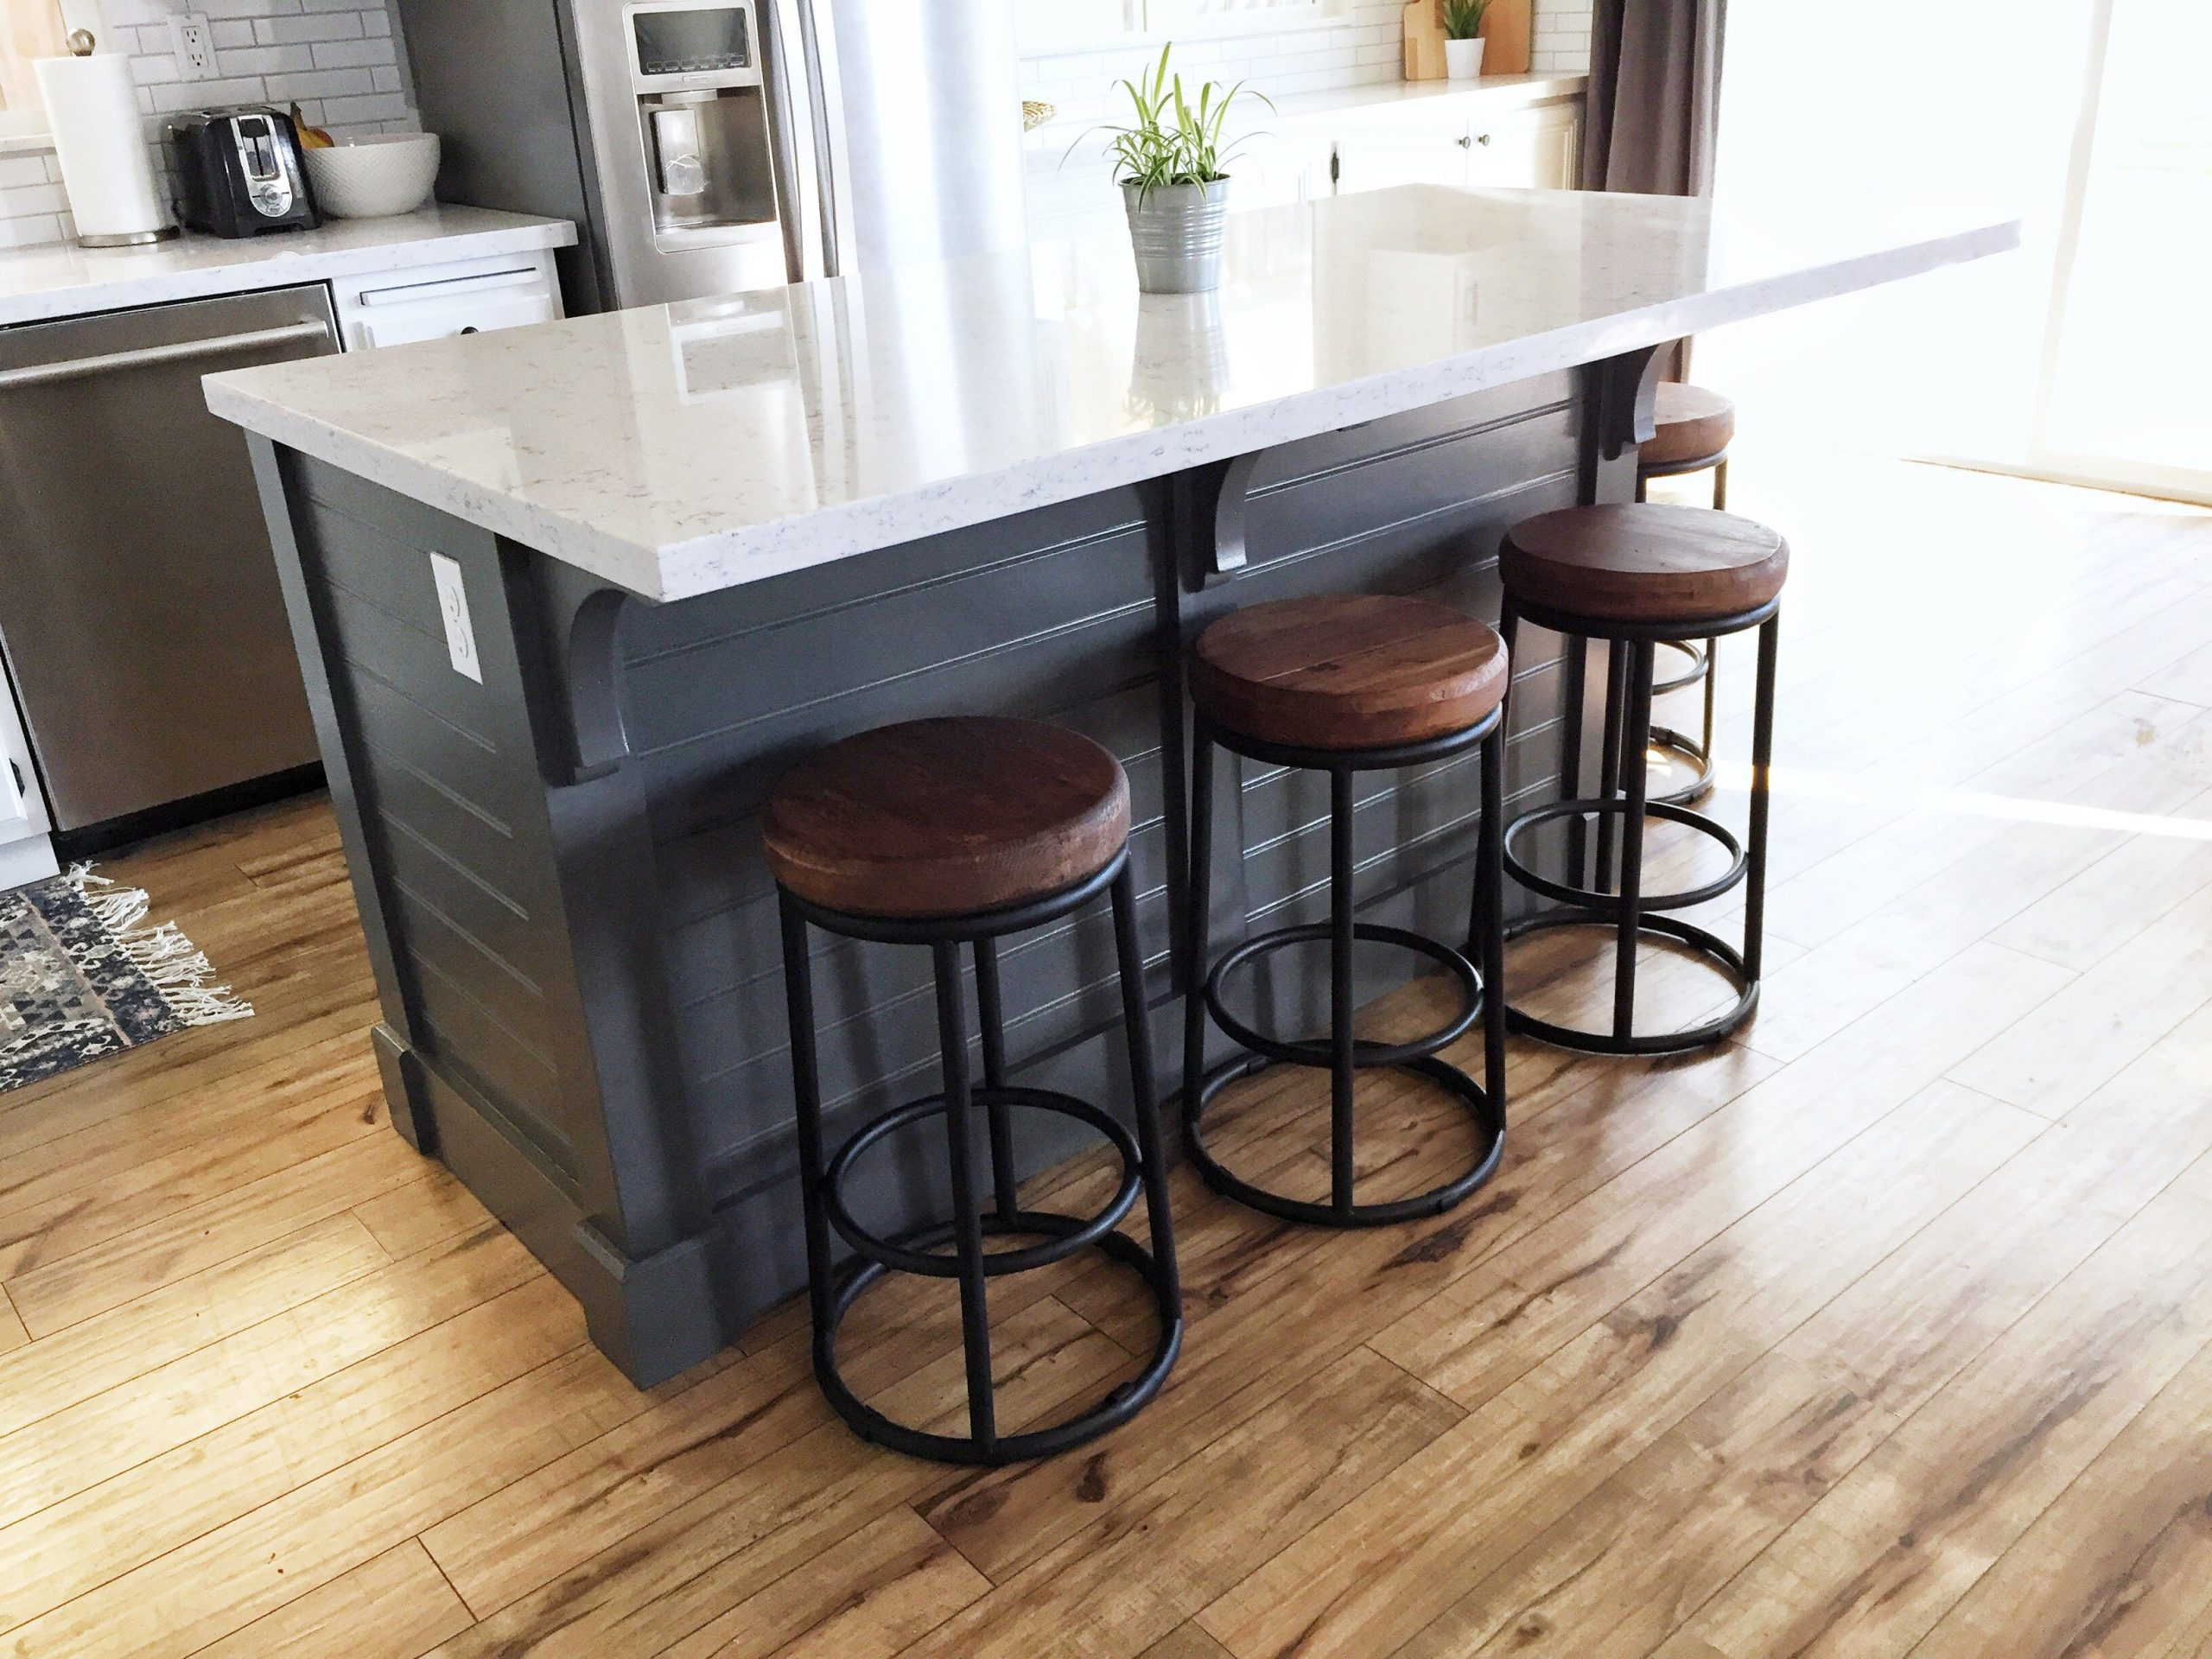 How to choose The Best Kitchen Island Designs in 2020 Cabinet Project - 2